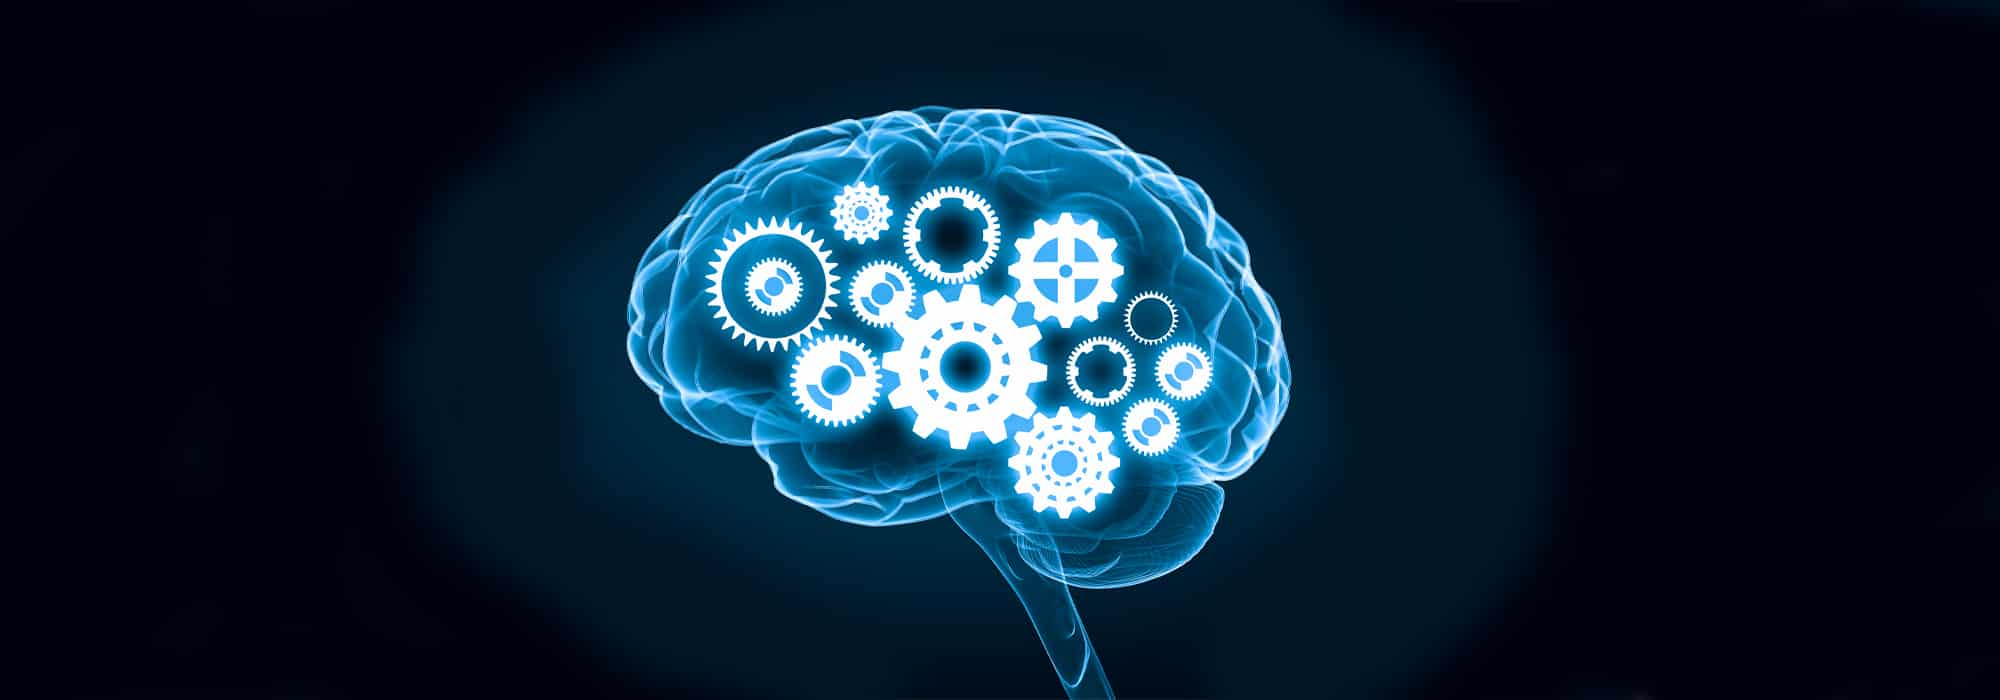 Common Questions about Modafinil